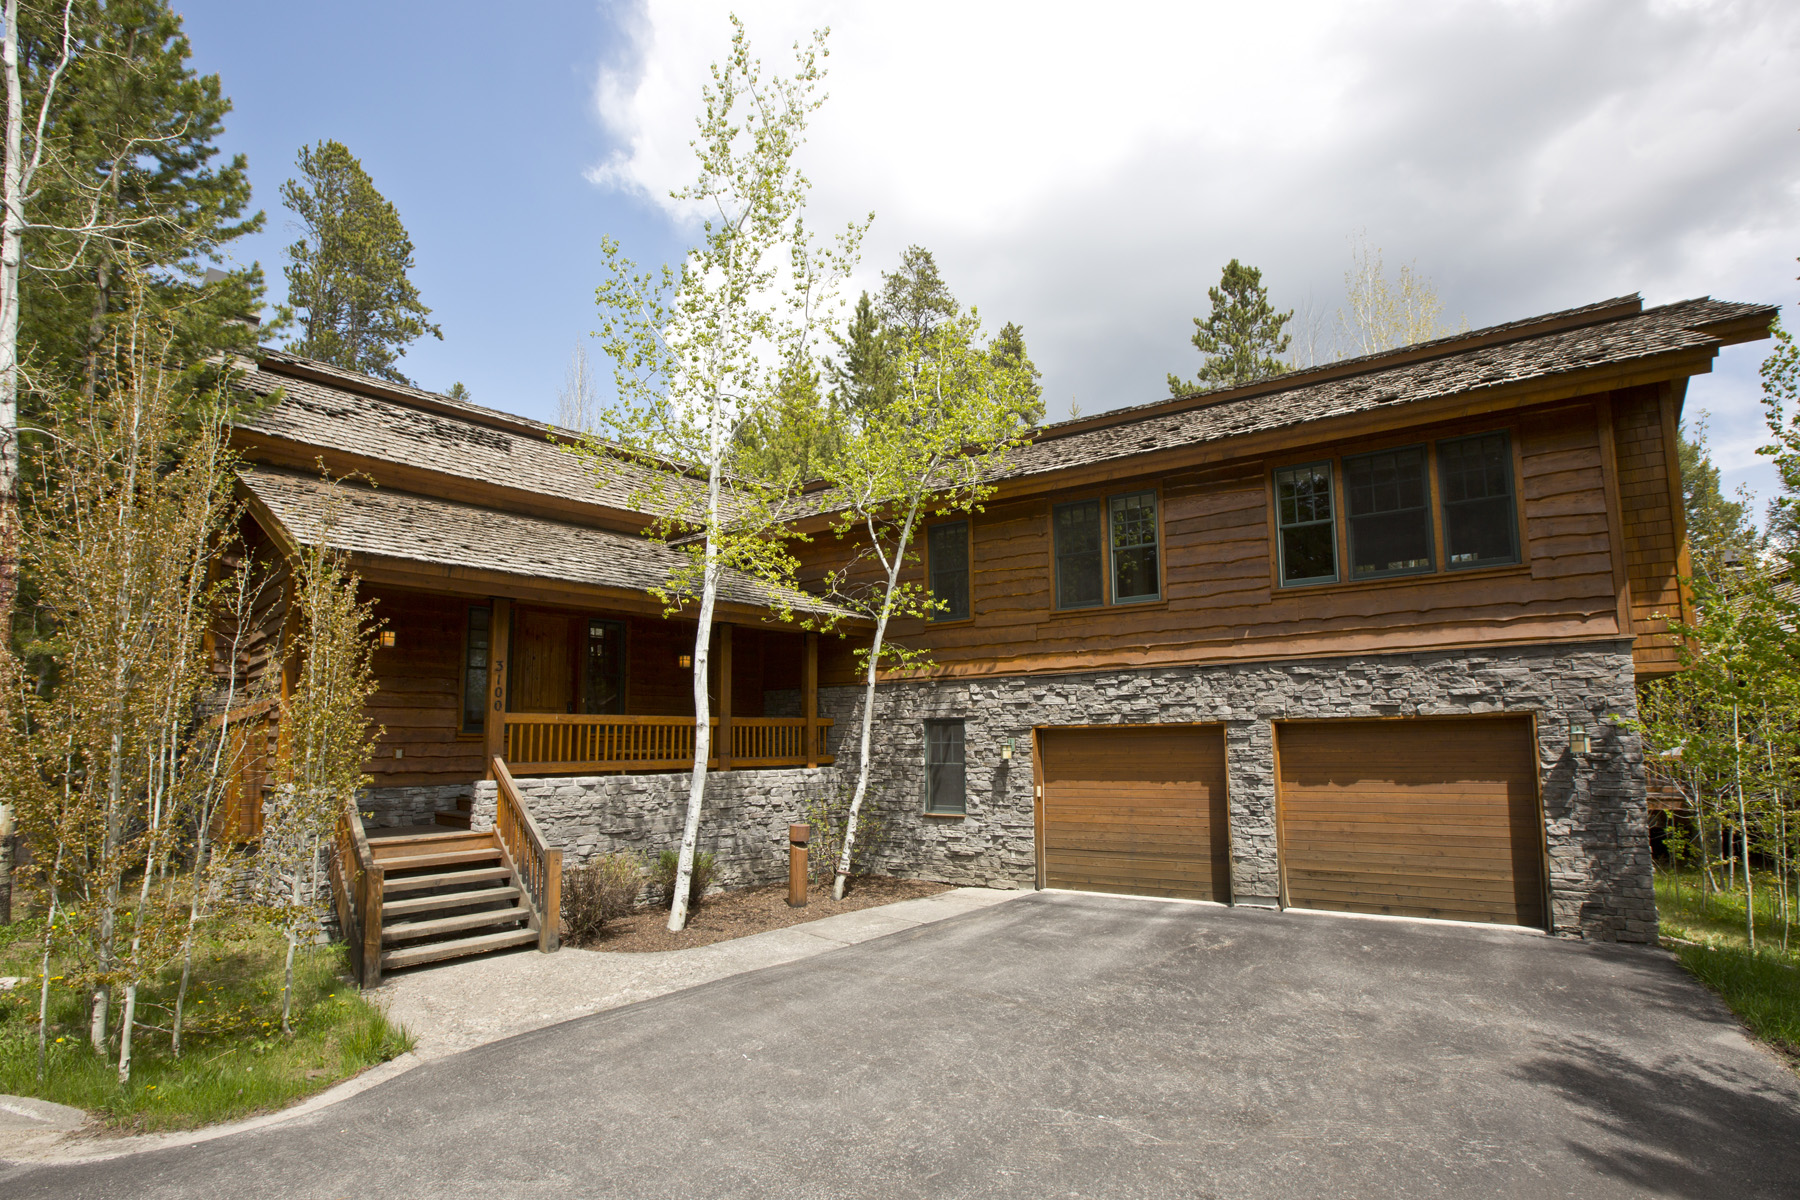 Таунхаус для того Продажа на Quintessential Jackson Hole Ski Home 3100 Arrowhead Teton Village, Вайоминг 83025 Соединенные Штаты